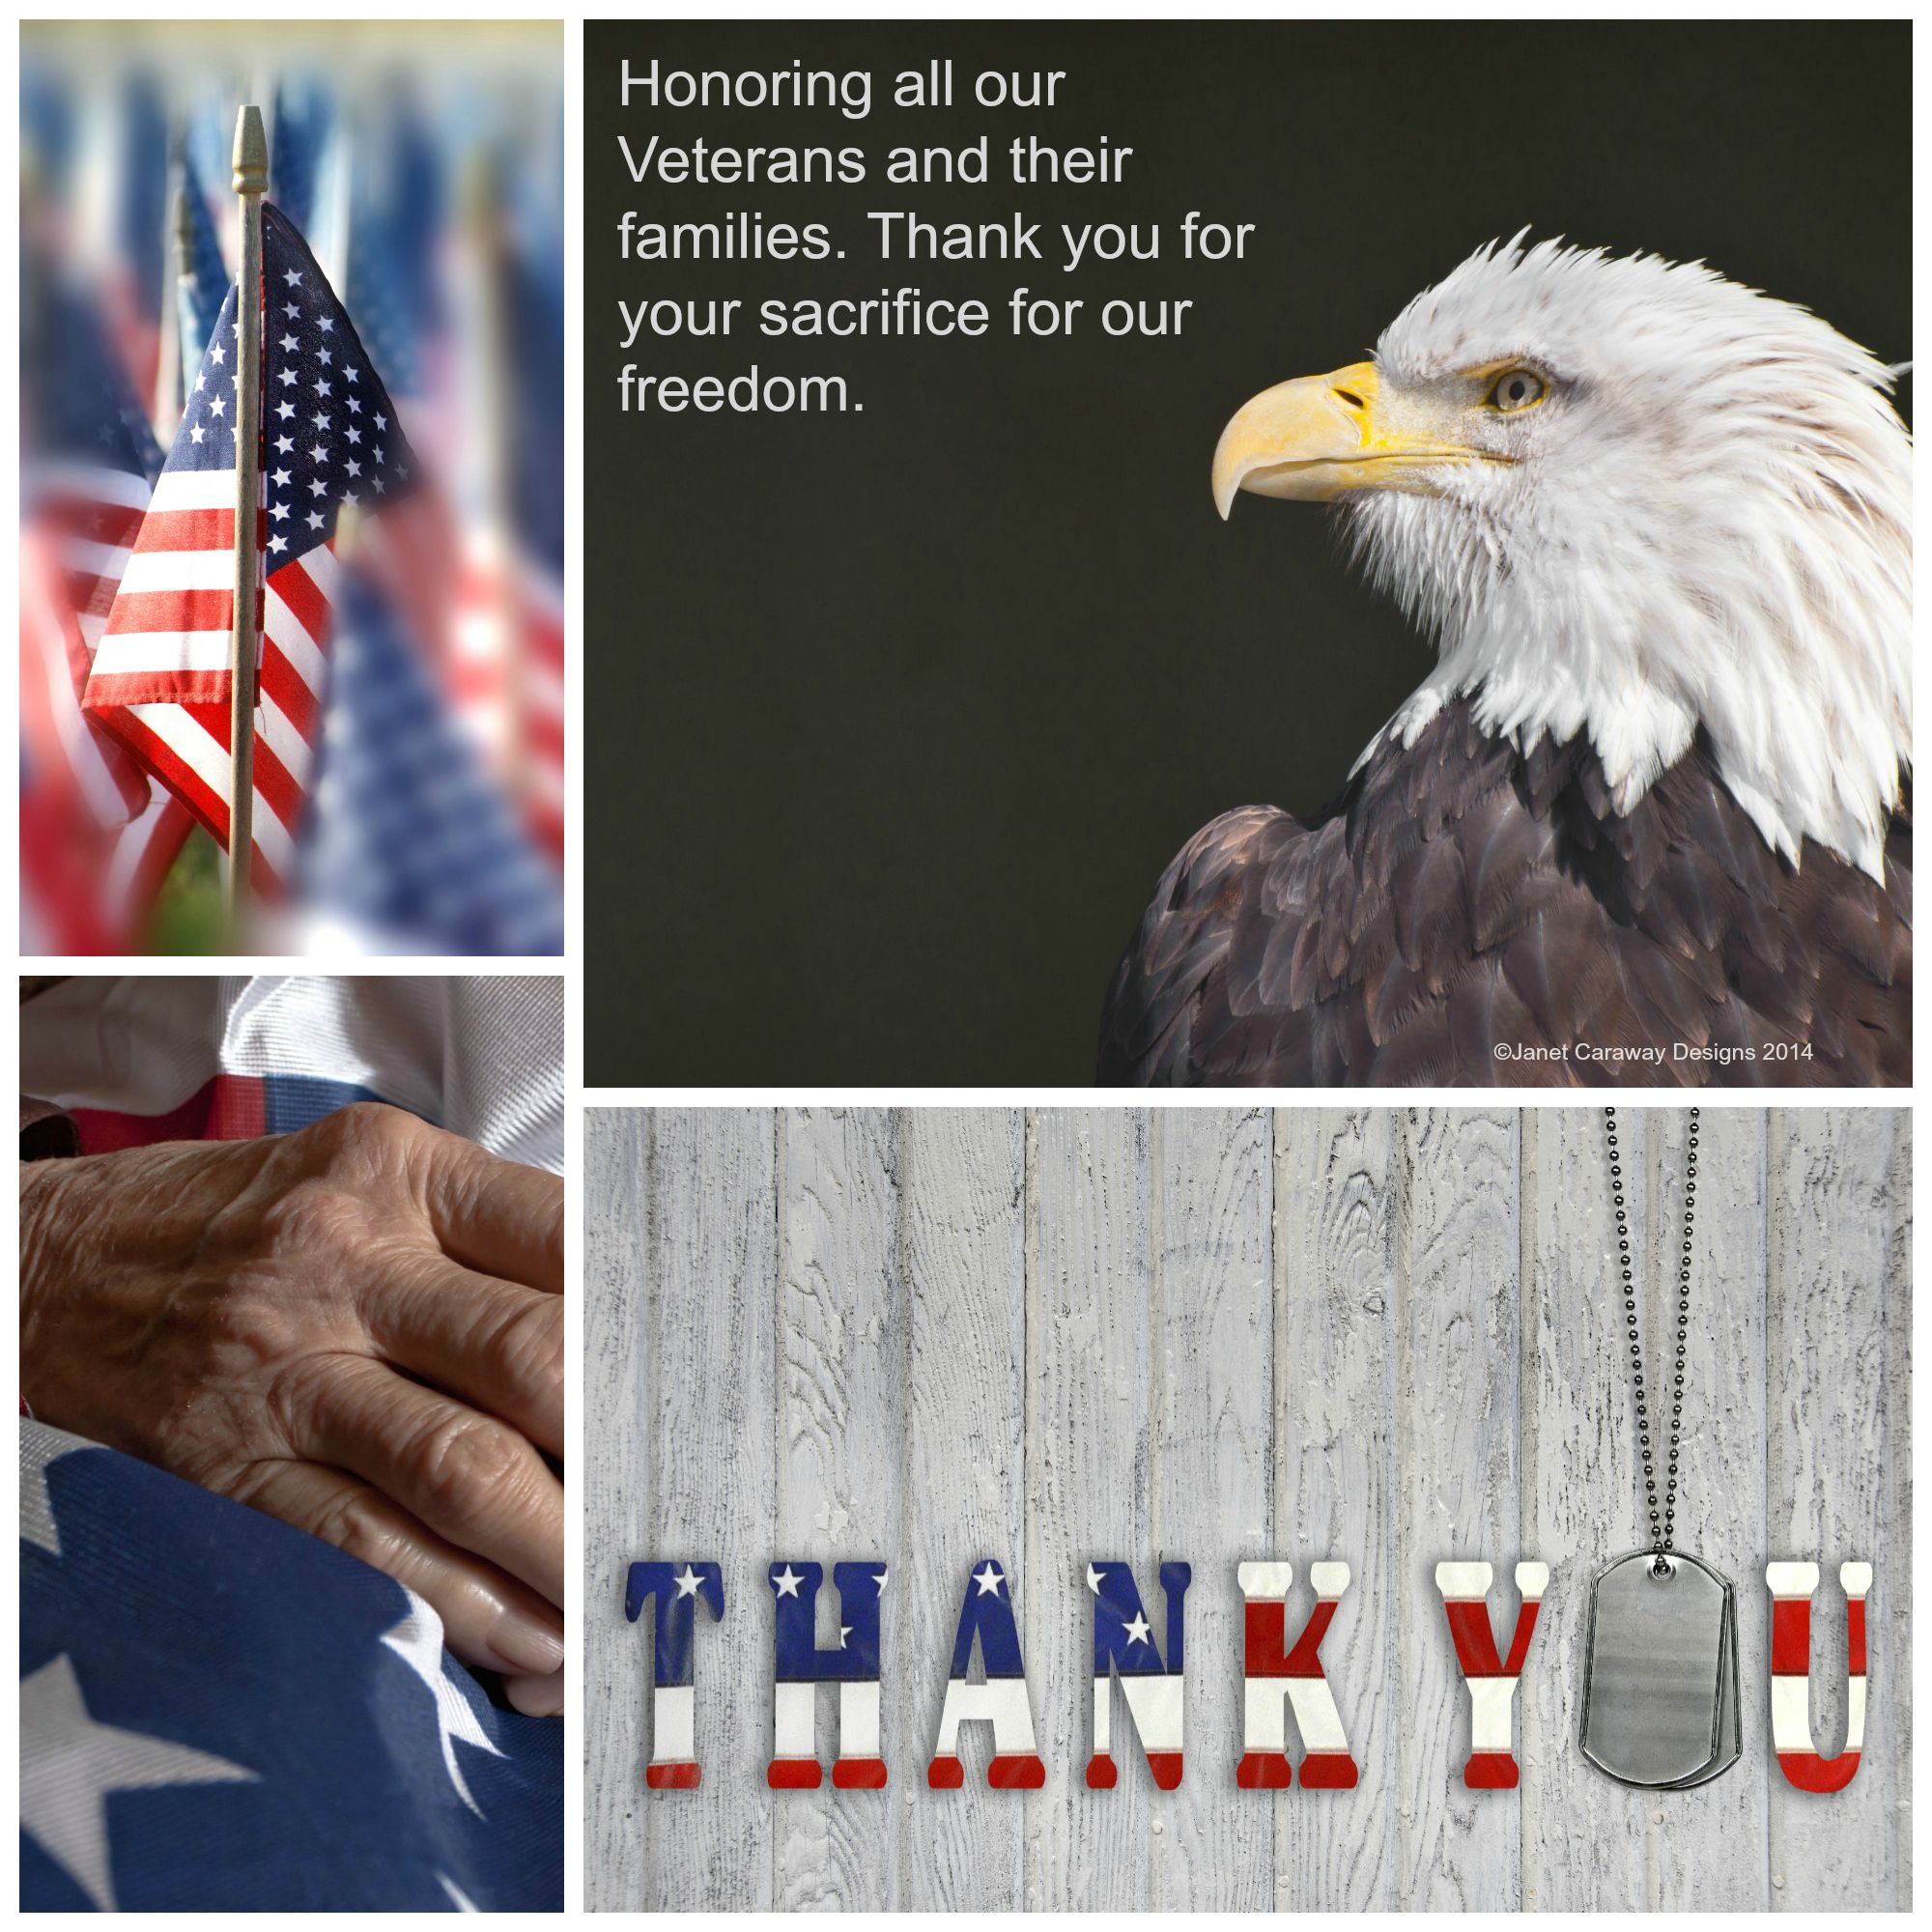 Giving thanks and honor to all our Veterans today.  A special thank you to my husband Cpt. Douglas Caraway, his dad Perry Caraway, my dad, Floyd Walden and my Uncles Durrell Walden and Pete Peterson.  Special thanks also to our cousins and friends who served this great nation.  #Veterans #Army #Navy #Marines #AirForce #CoastGuard #Military #USA #UnitedStates